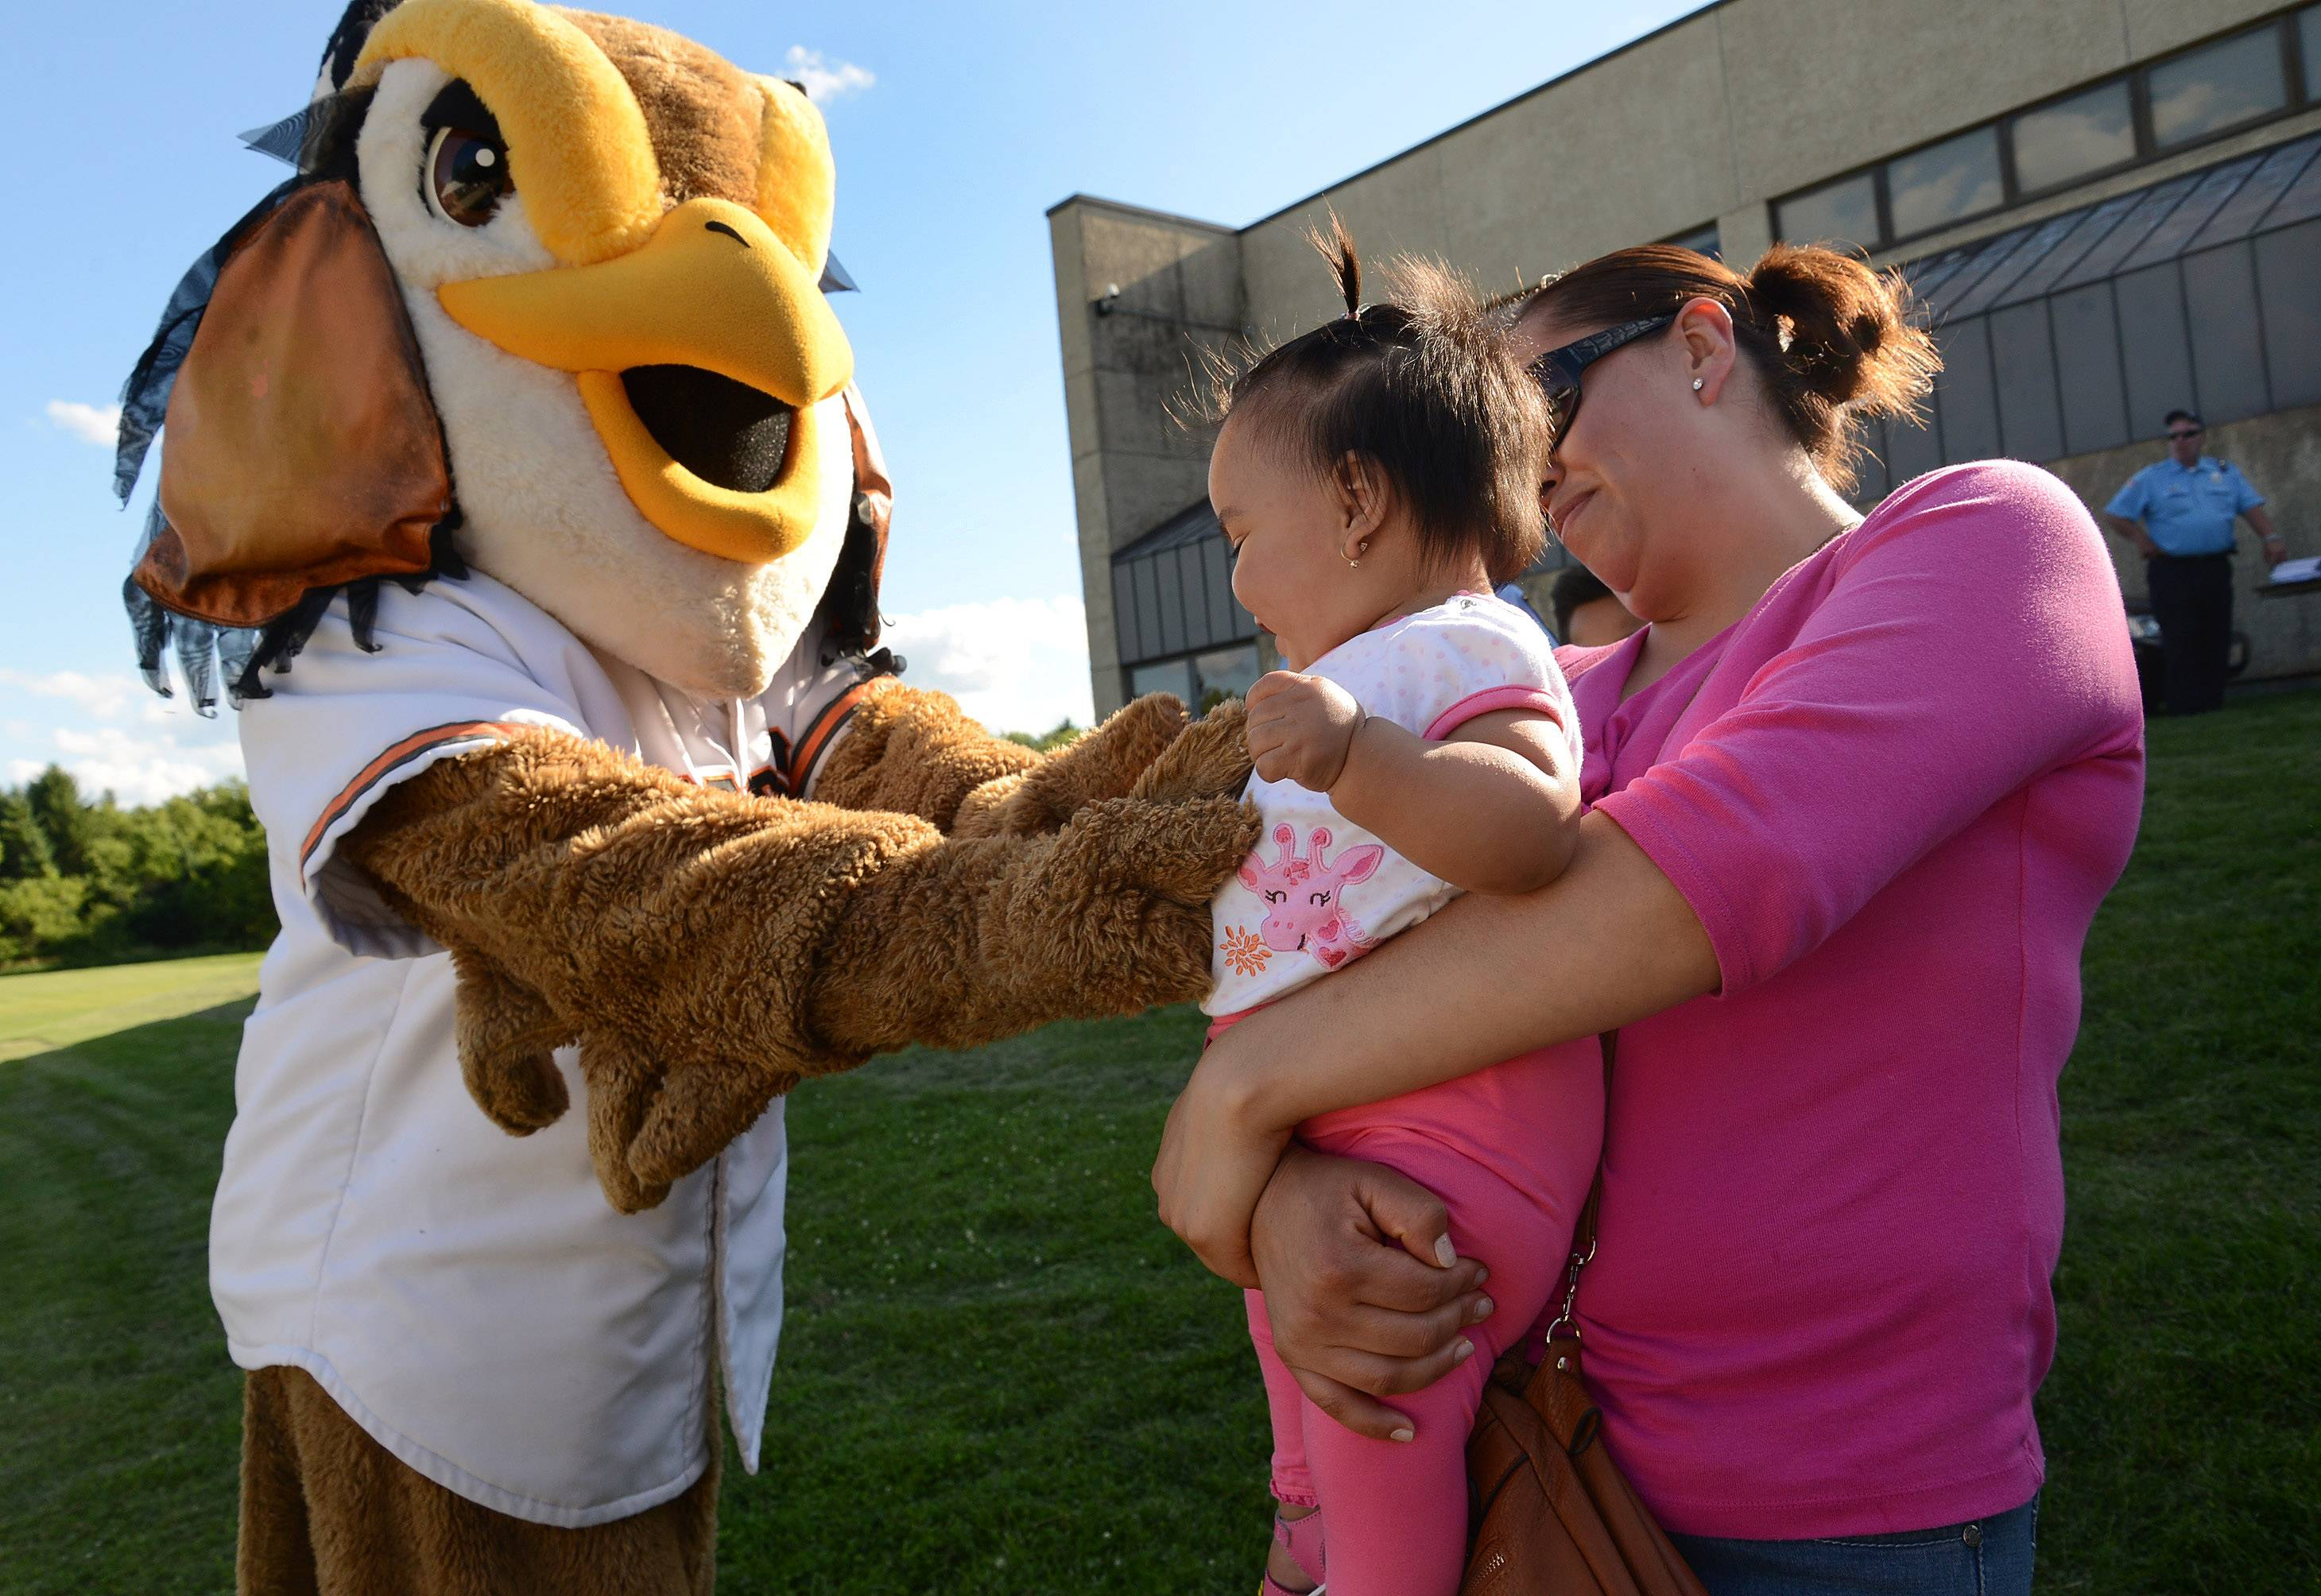 Eleven-month-old Sarai Hernandez, and her mom, Martha Medina of Hanover Park, visit with Coop, the Schaumburg Boomers mascot, on Wednesday in Hanover Park.